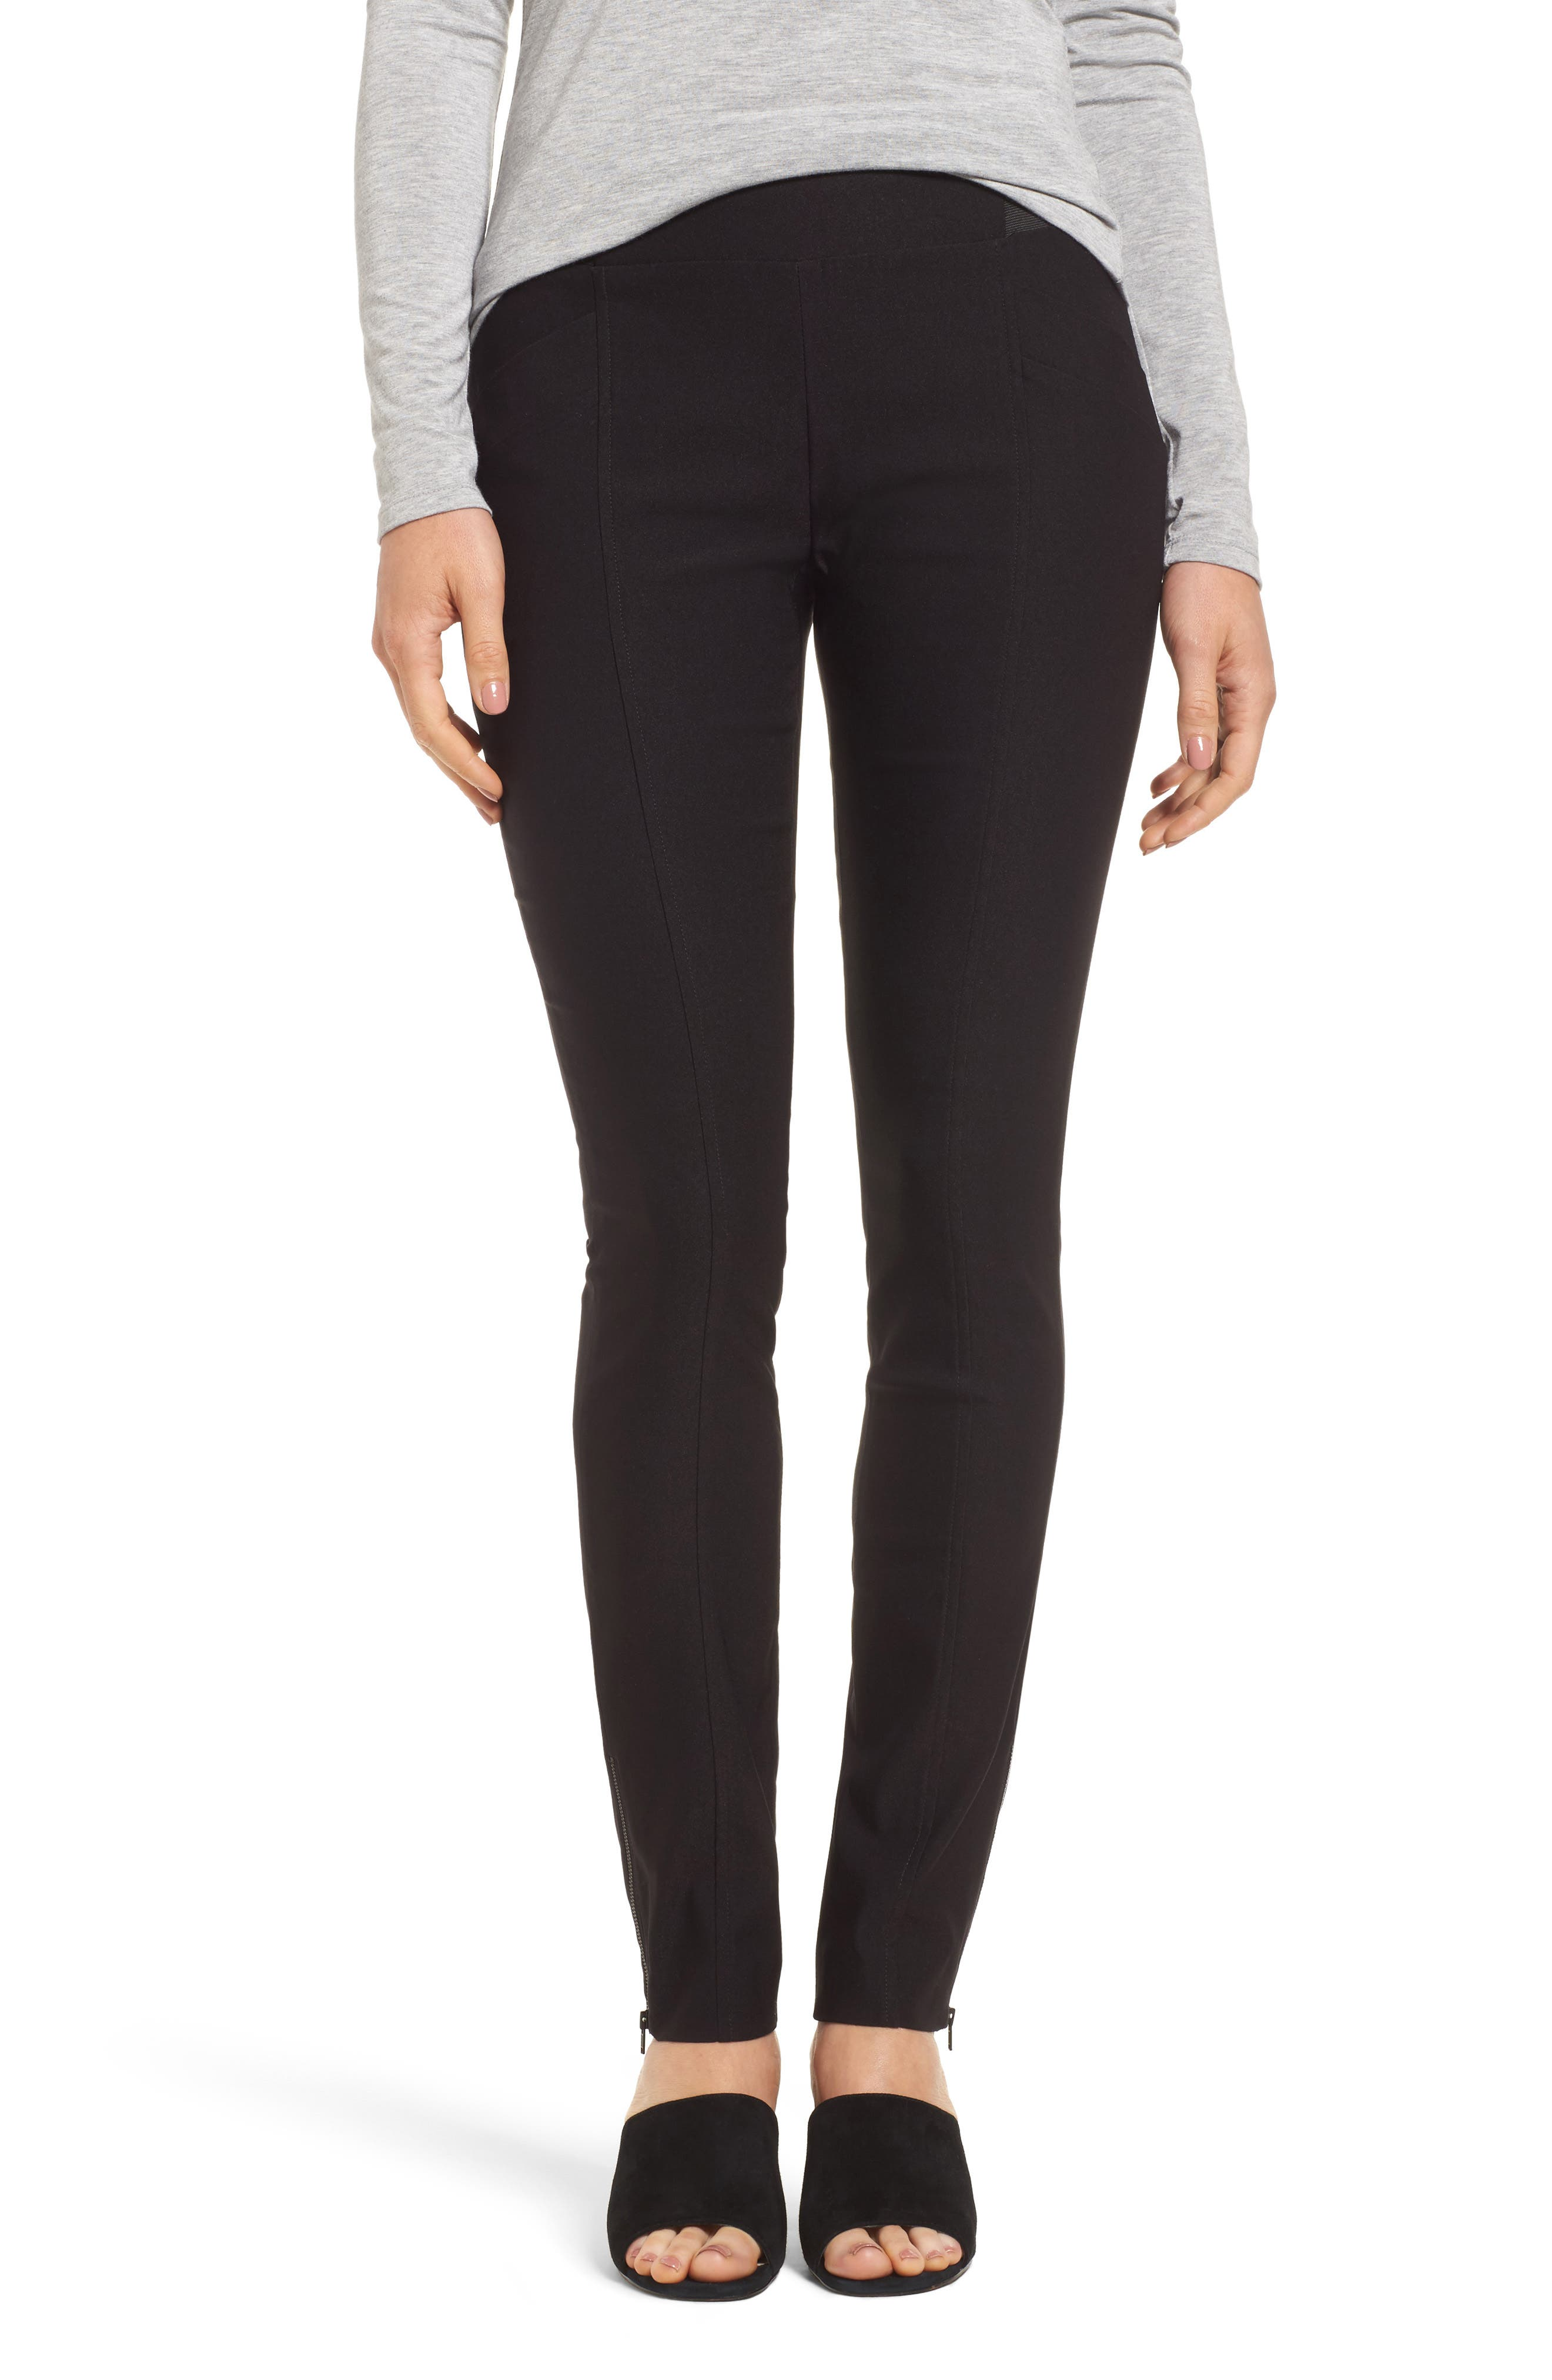 Alternate Image 1 Selected - NIC+ZOE Zip Ankle Wonder Stretch Pants